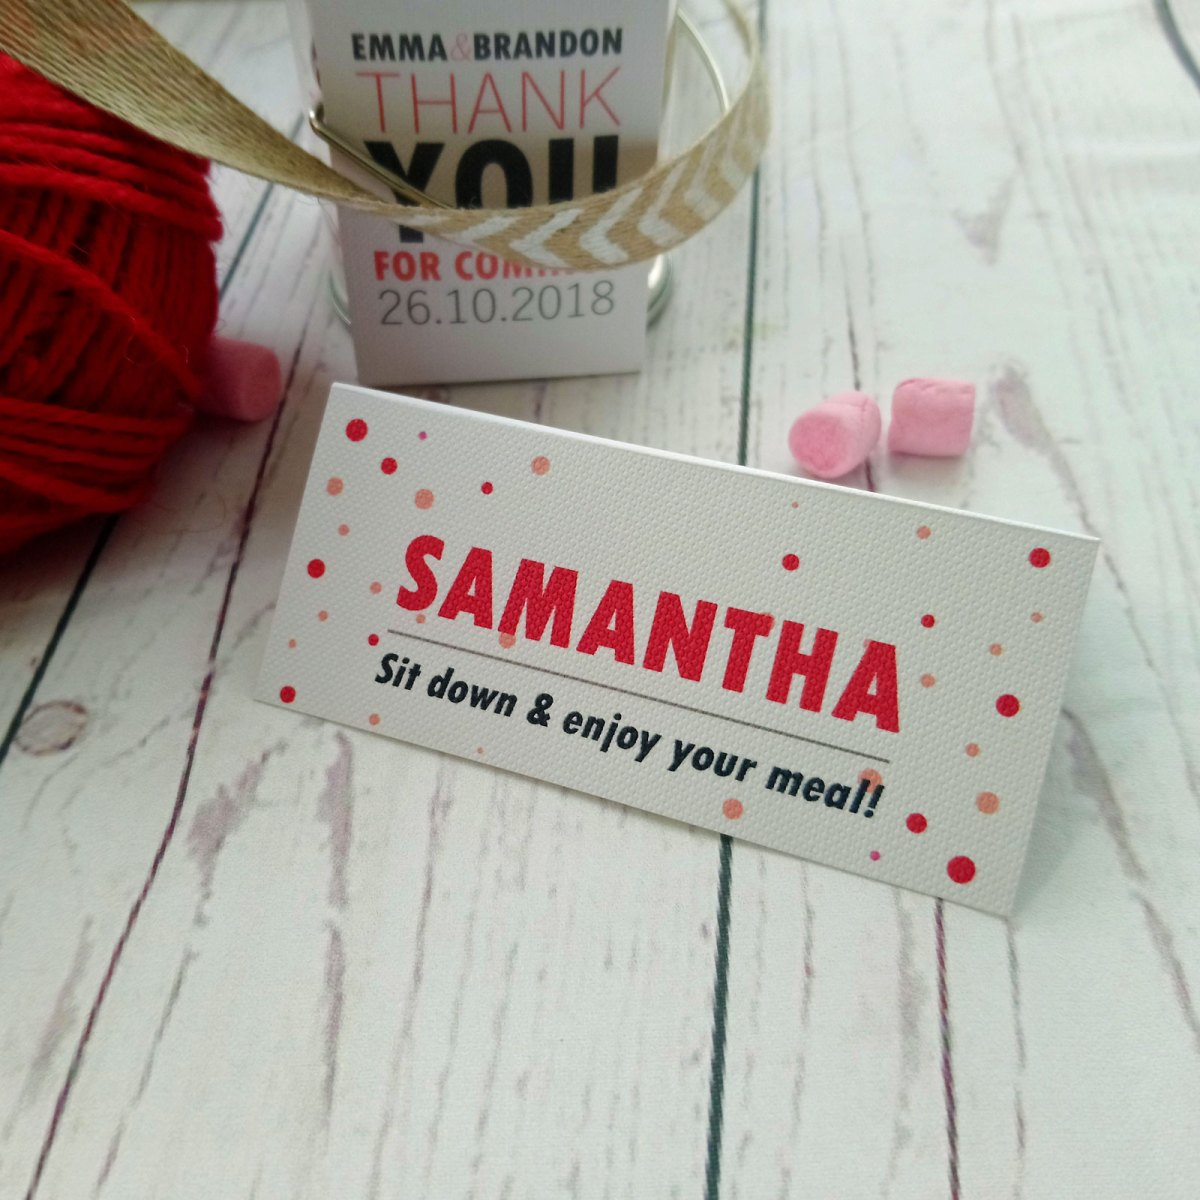 Red and Pink Polka Dot Place Card